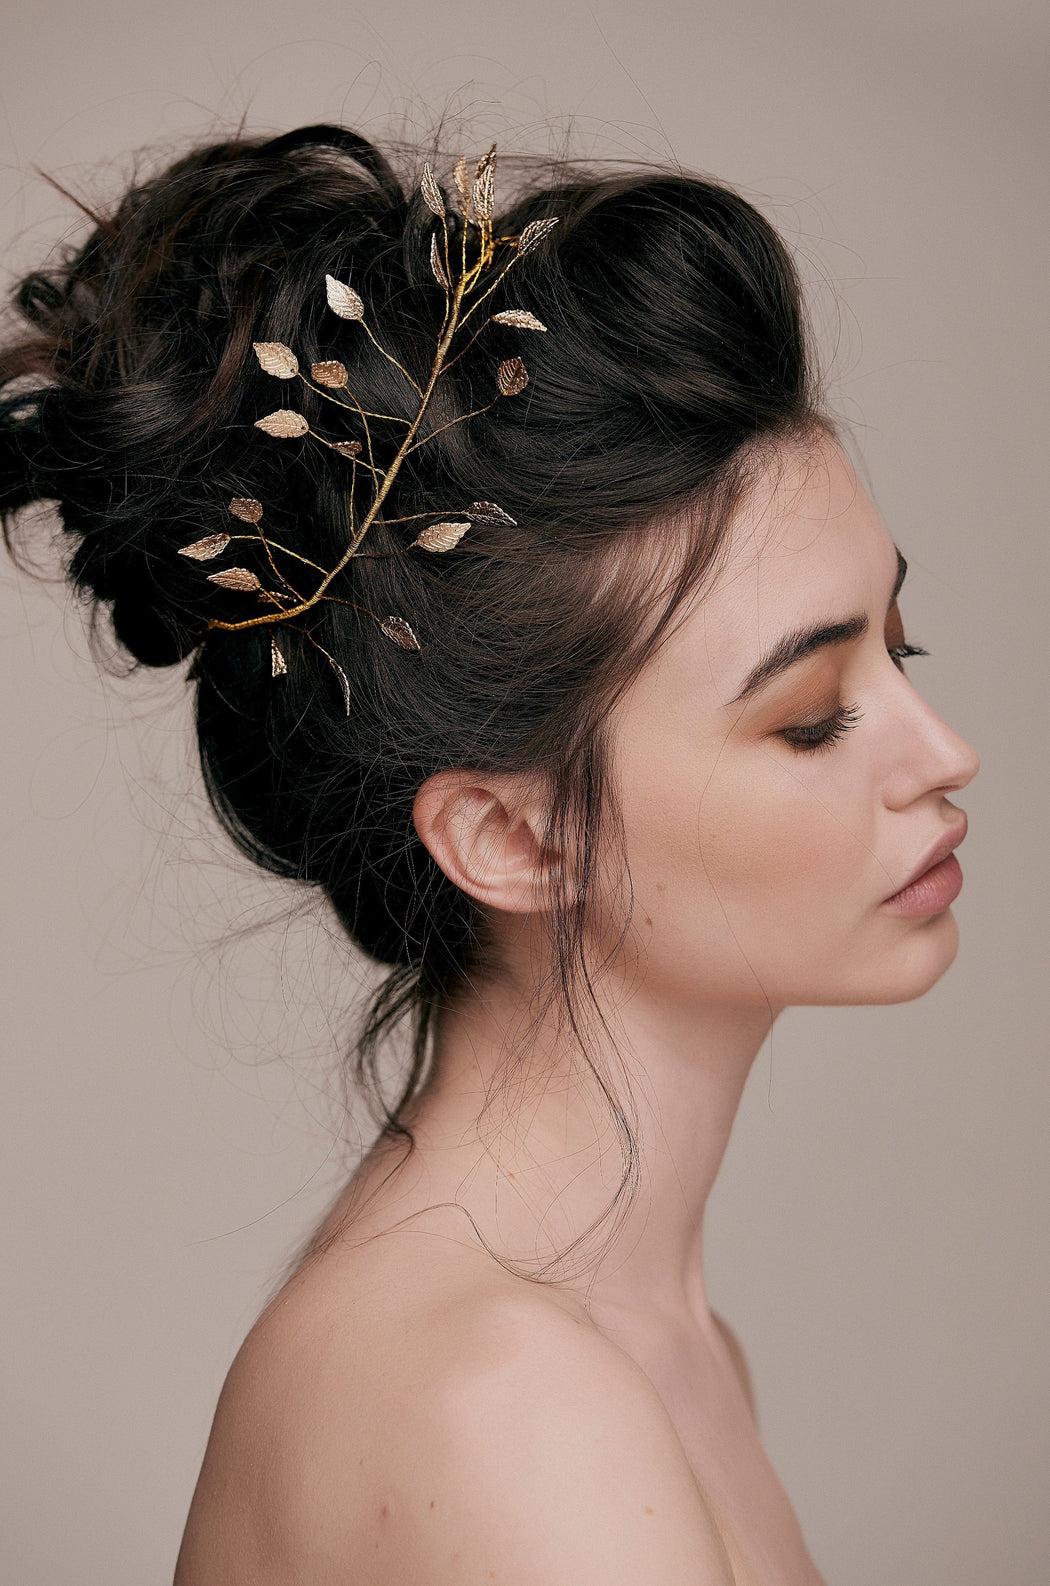 Emily gold leaf hair vine large taylor rose gold hairband crown taylor and rose hair vine boho bridal hair ideas wedding hairstyles brides hair junglespirit Gallery